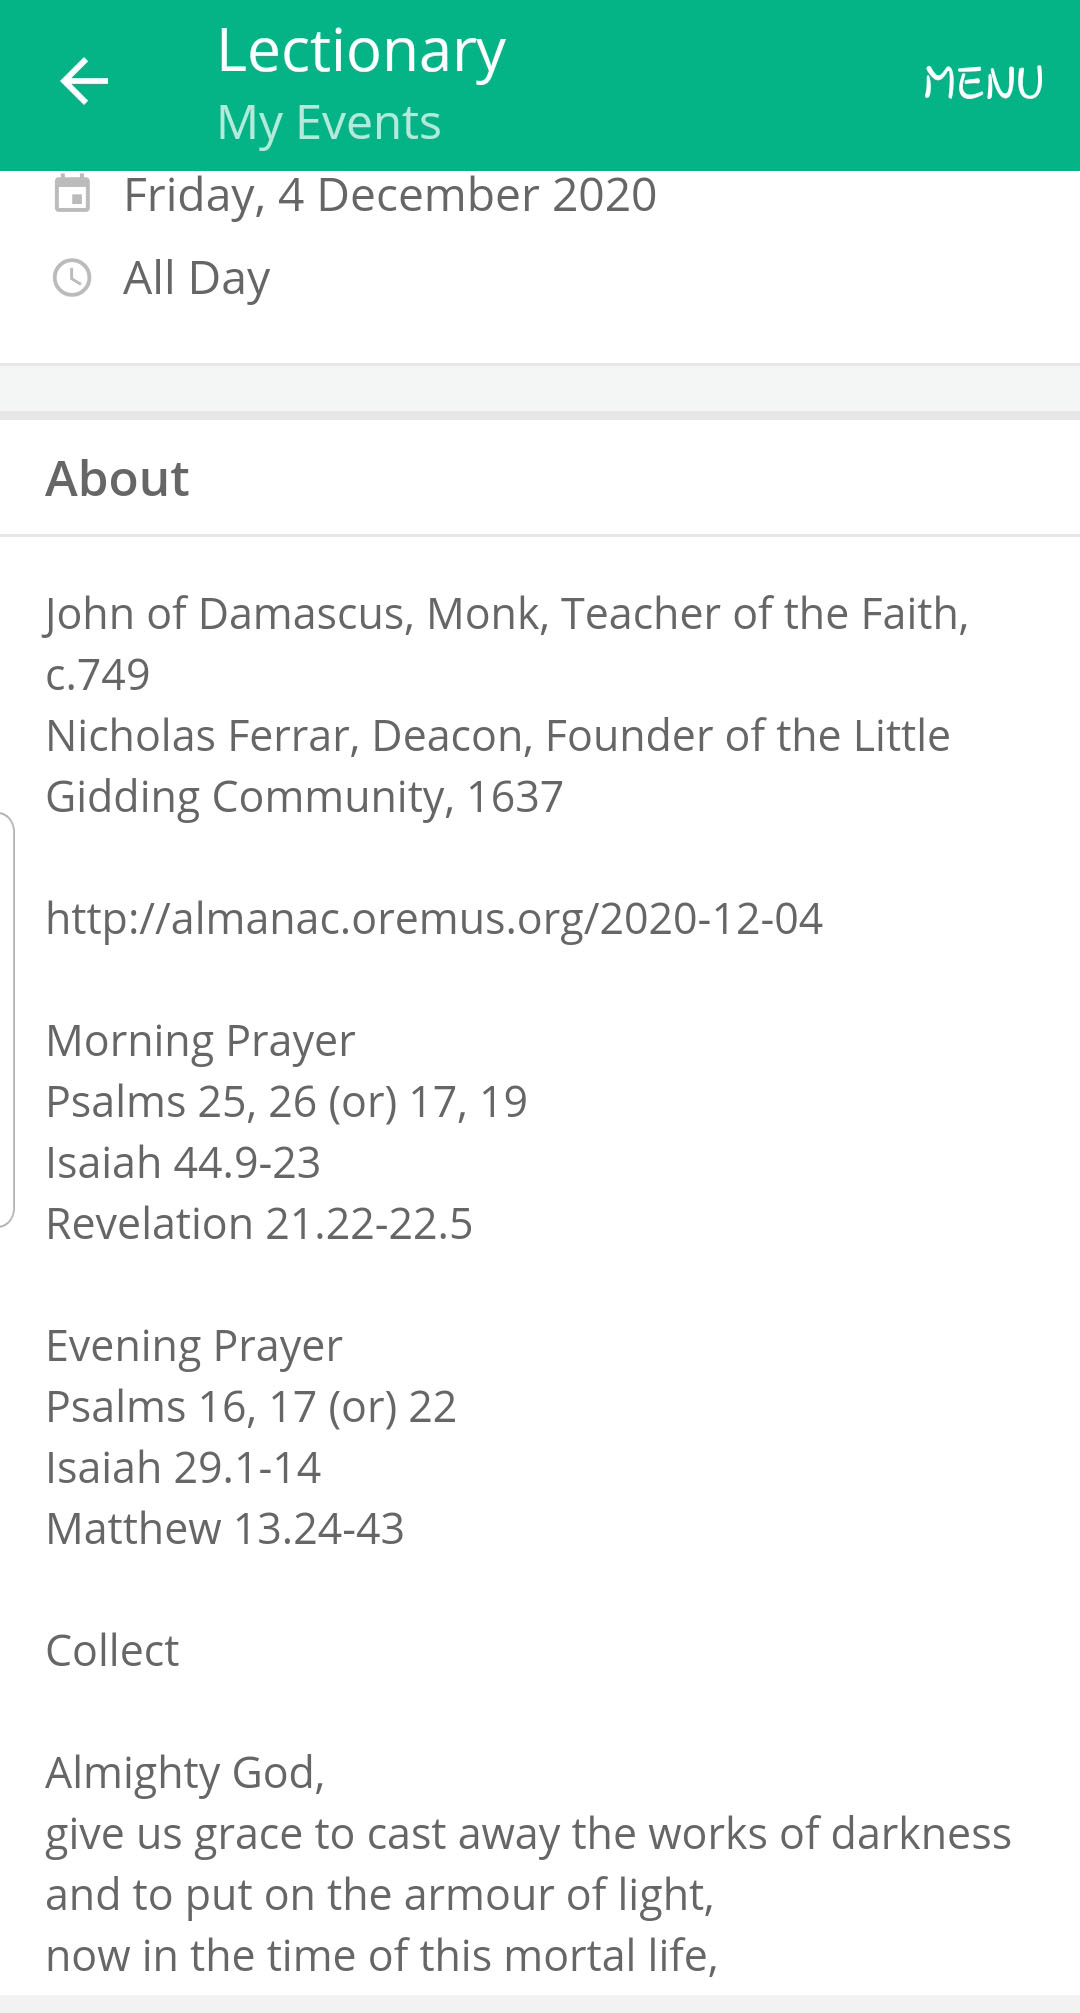 Lectionary 1